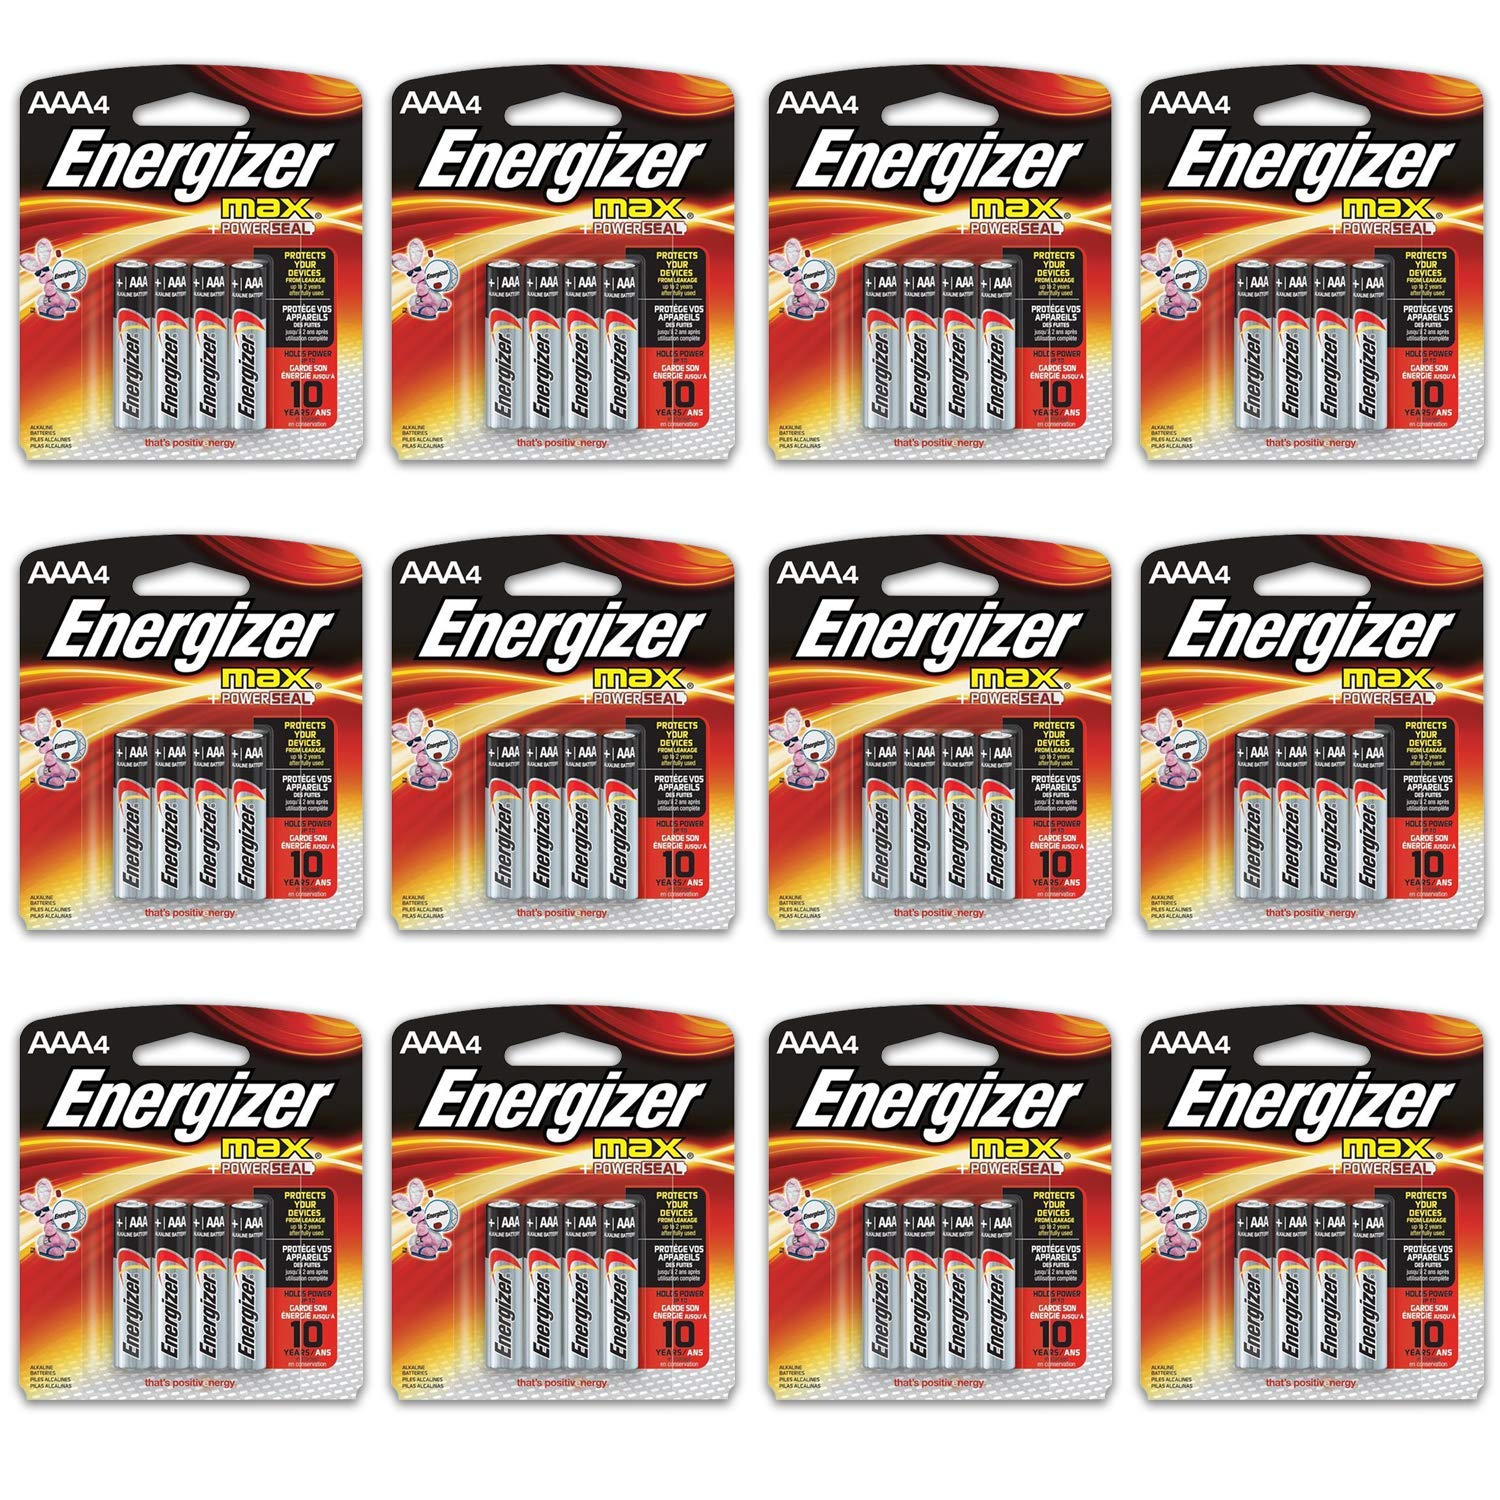 48 Count Energizer Max AAA Batteries - 12 Pack of 4 AAA4 Total of 48 Batteries, The Perfect Choice of Power for All AAA Battery Operated Devices by HeroFiber